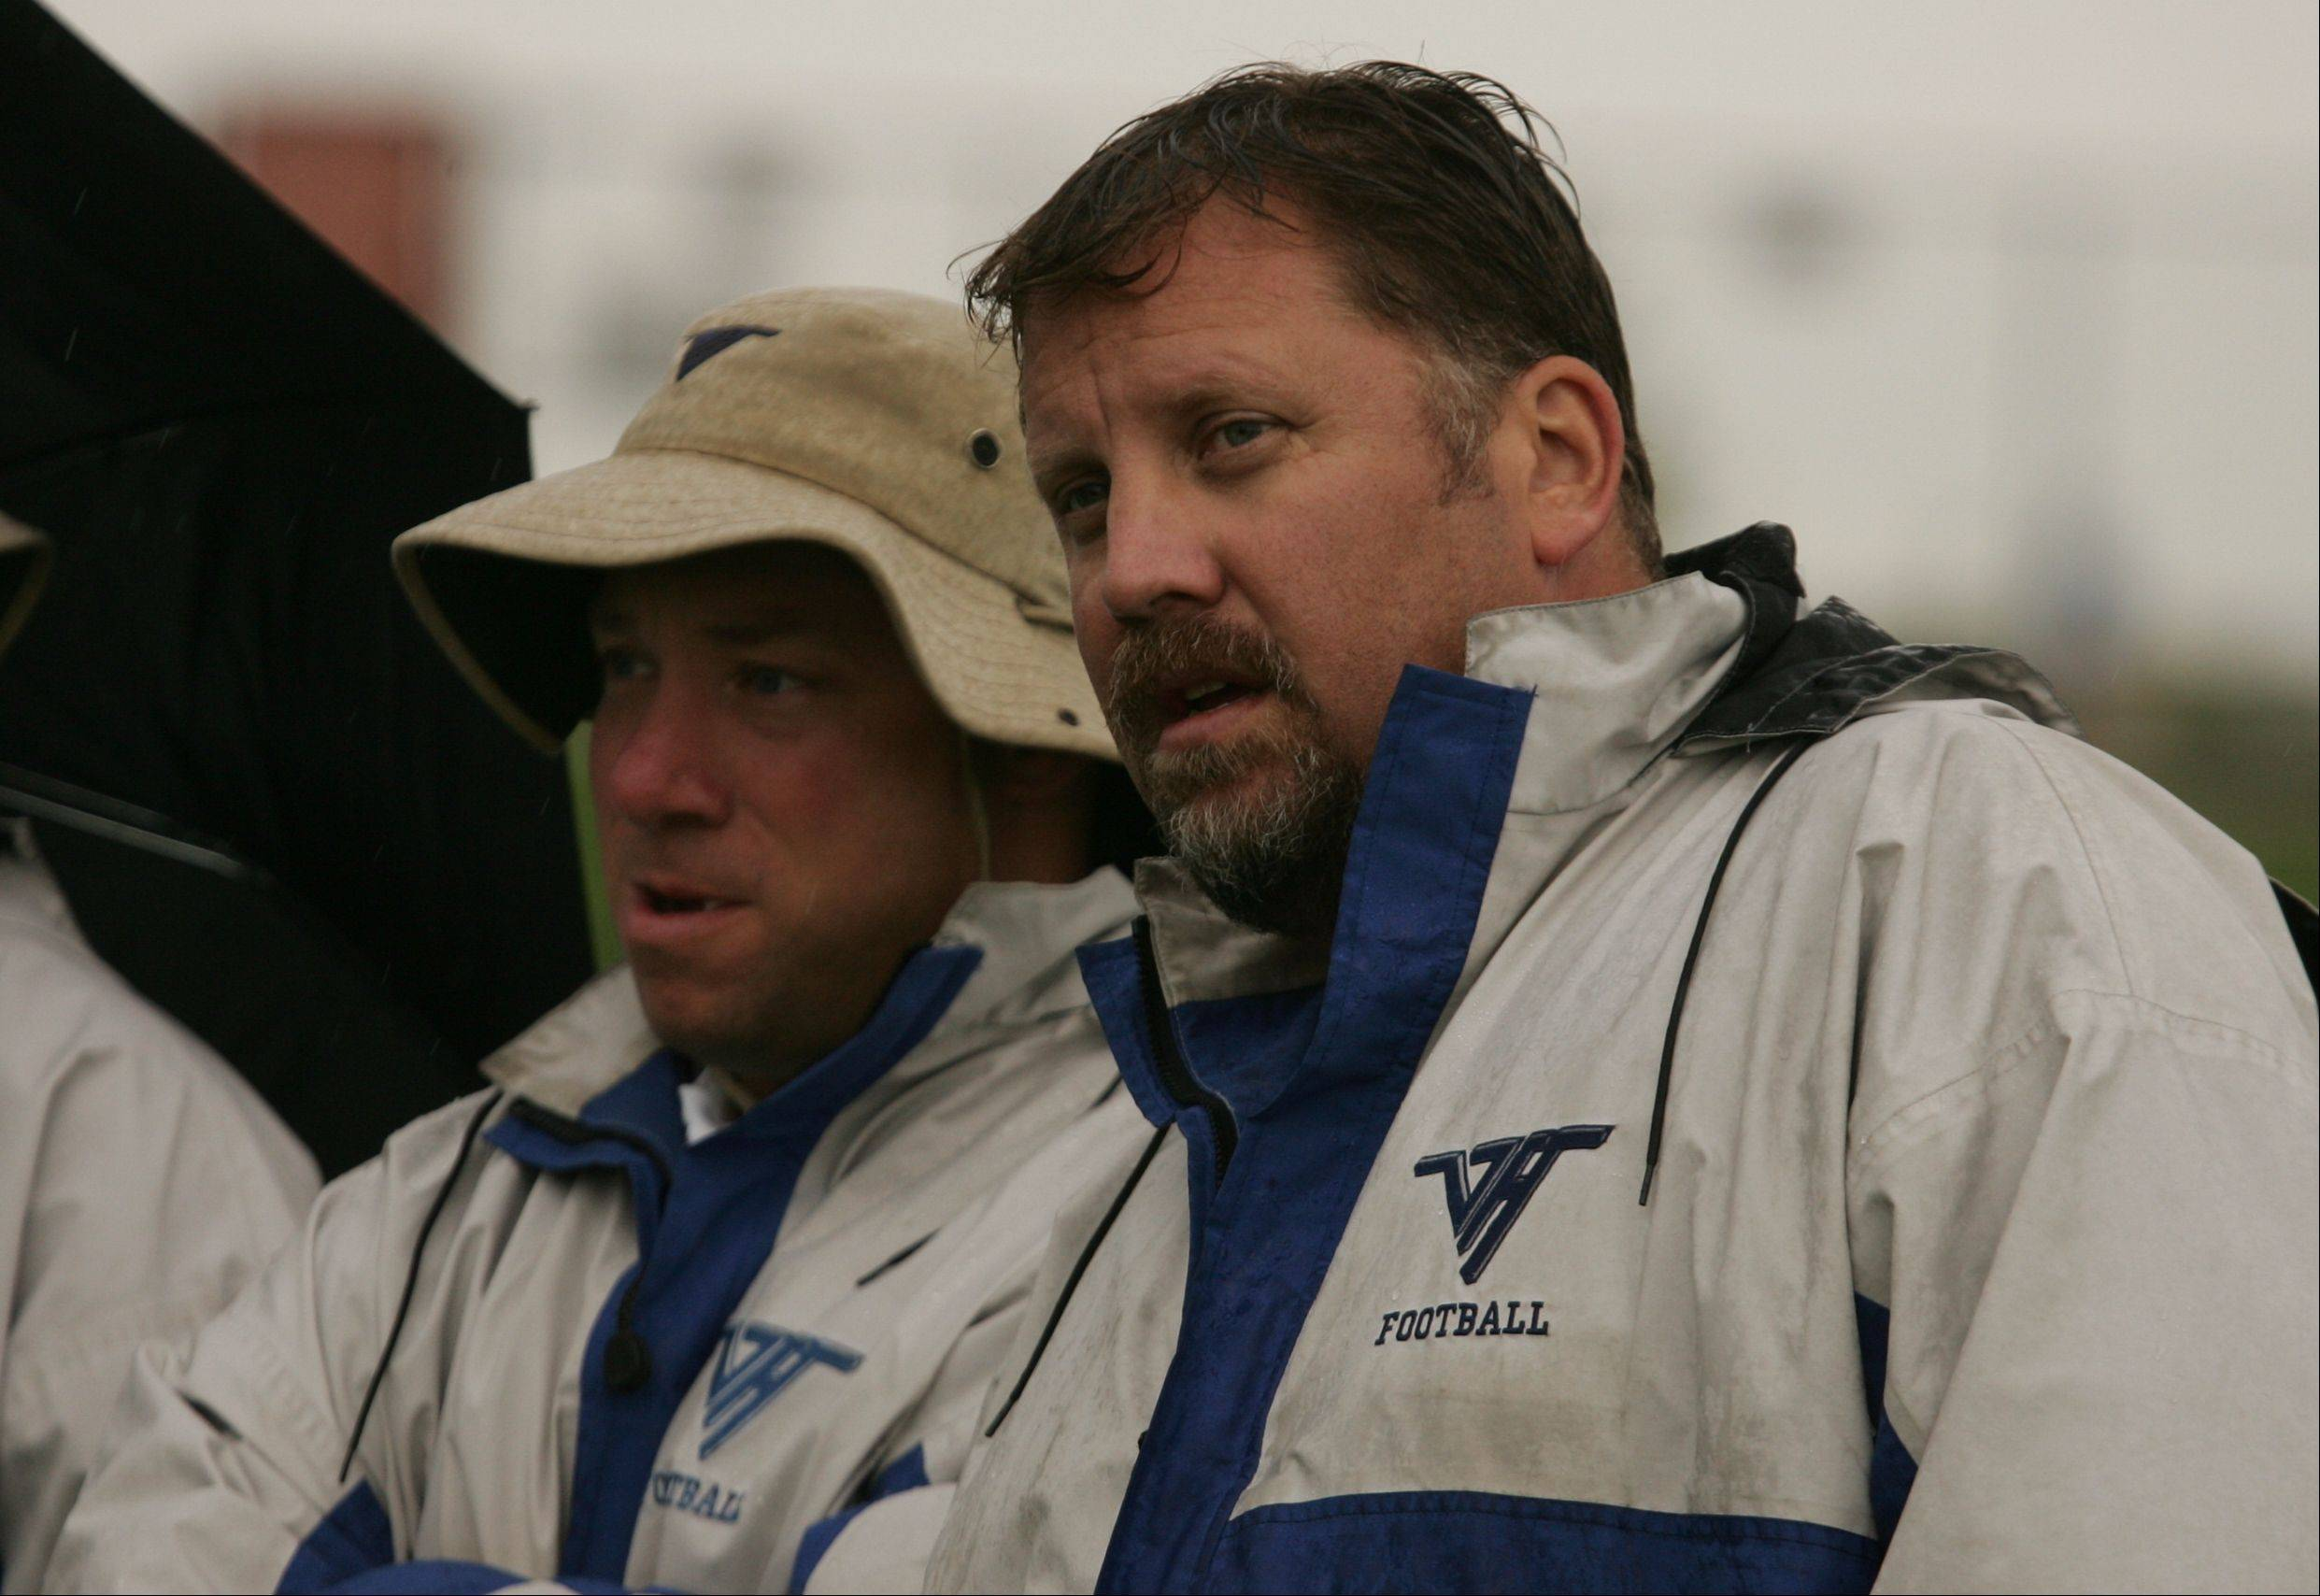 Coach Tony Monken won't forget the unusual conditions for Vernon Hills' game against Mundelein 10 years ago — a pregame candlelight vigil, and no air traffic overhead.